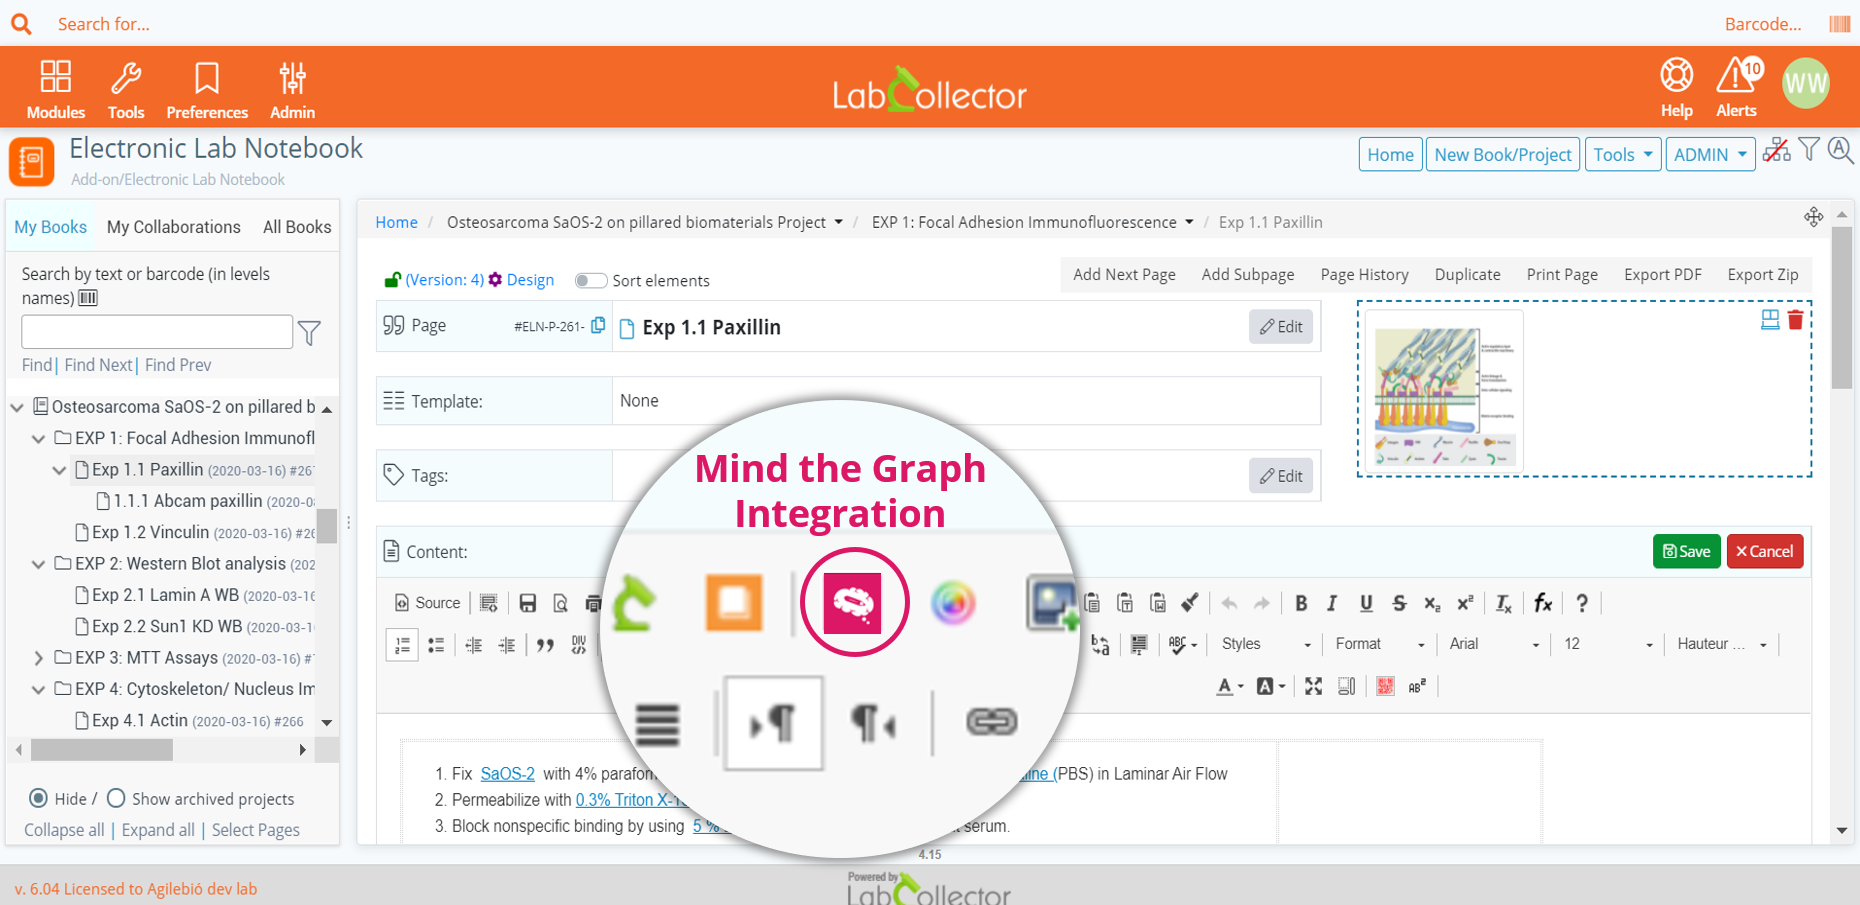 LabCollector ELN and Mind the Graph integration